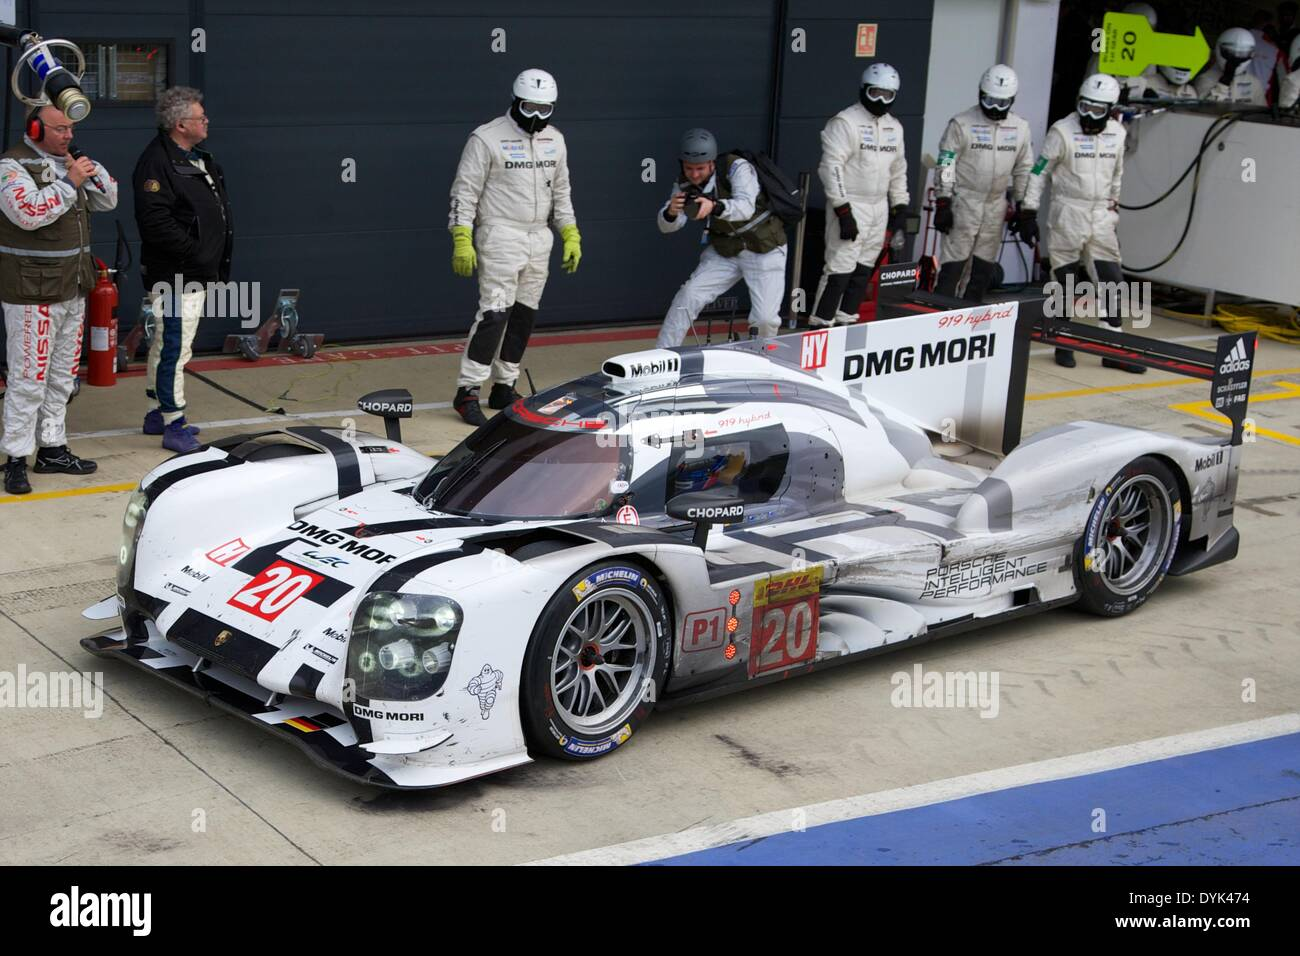 Silverstone Uk 20th Apr 2014 A Pit Stop For Porsche Team Porsche Stock Photo Royalty Free